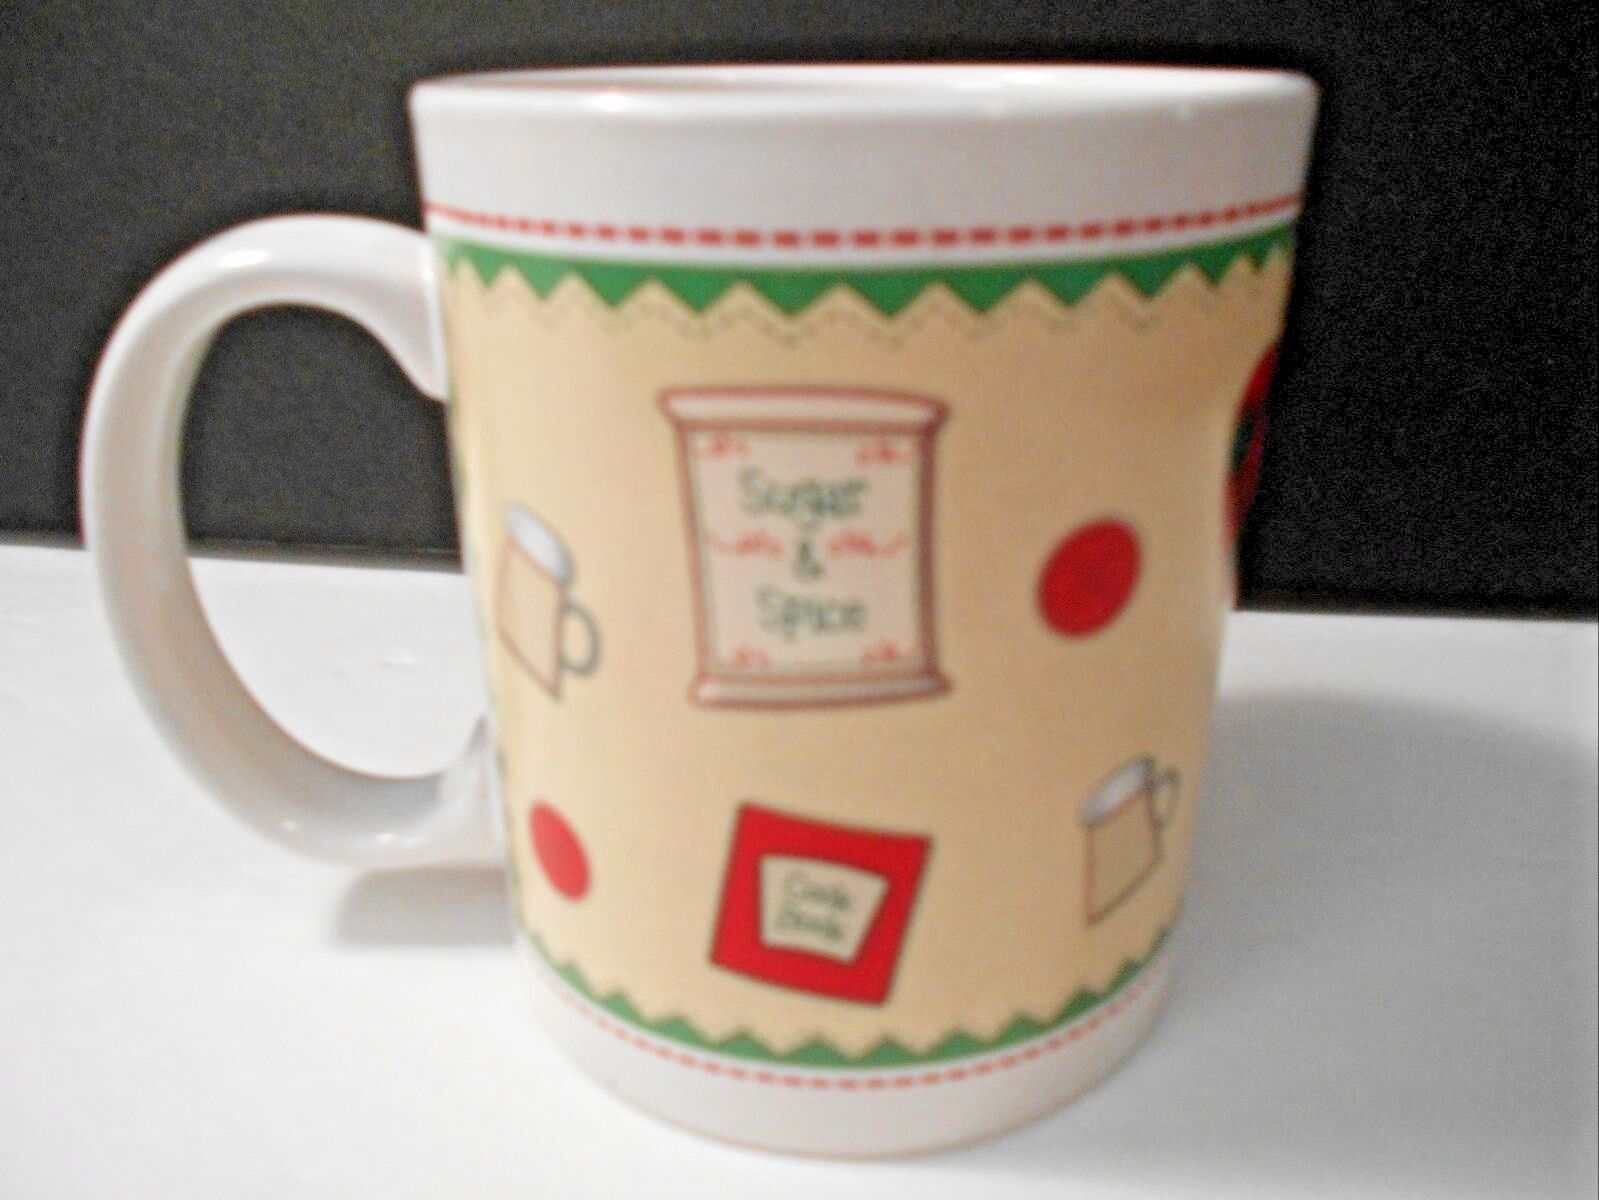 "Primary image for Better Homes Coffee Mug Cup 4013FY07 Sugar & Spice 3.75"" x 3.25"" CUTE"